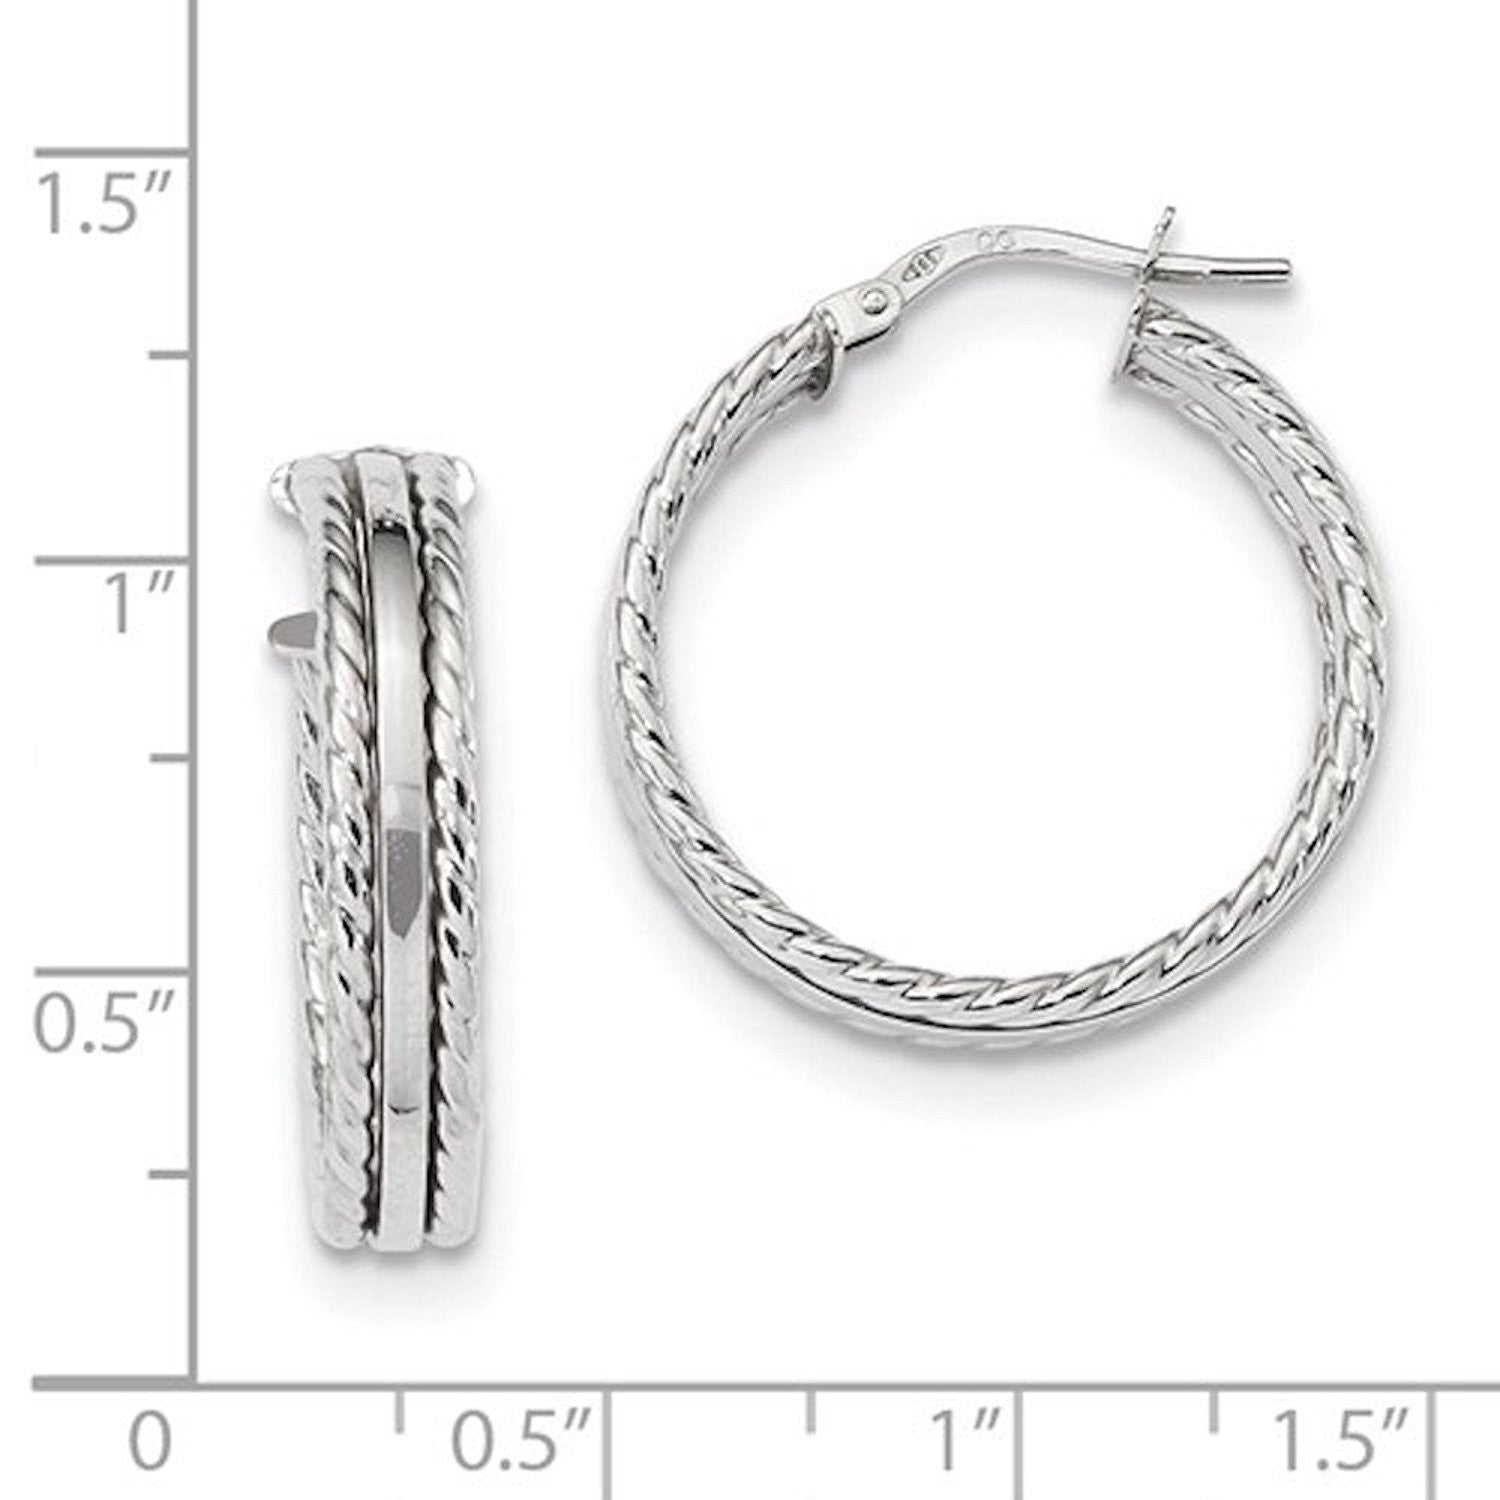 14K White Gold 23mmx4.5mm Textured Modern Contemporary Round Hoop Earrings